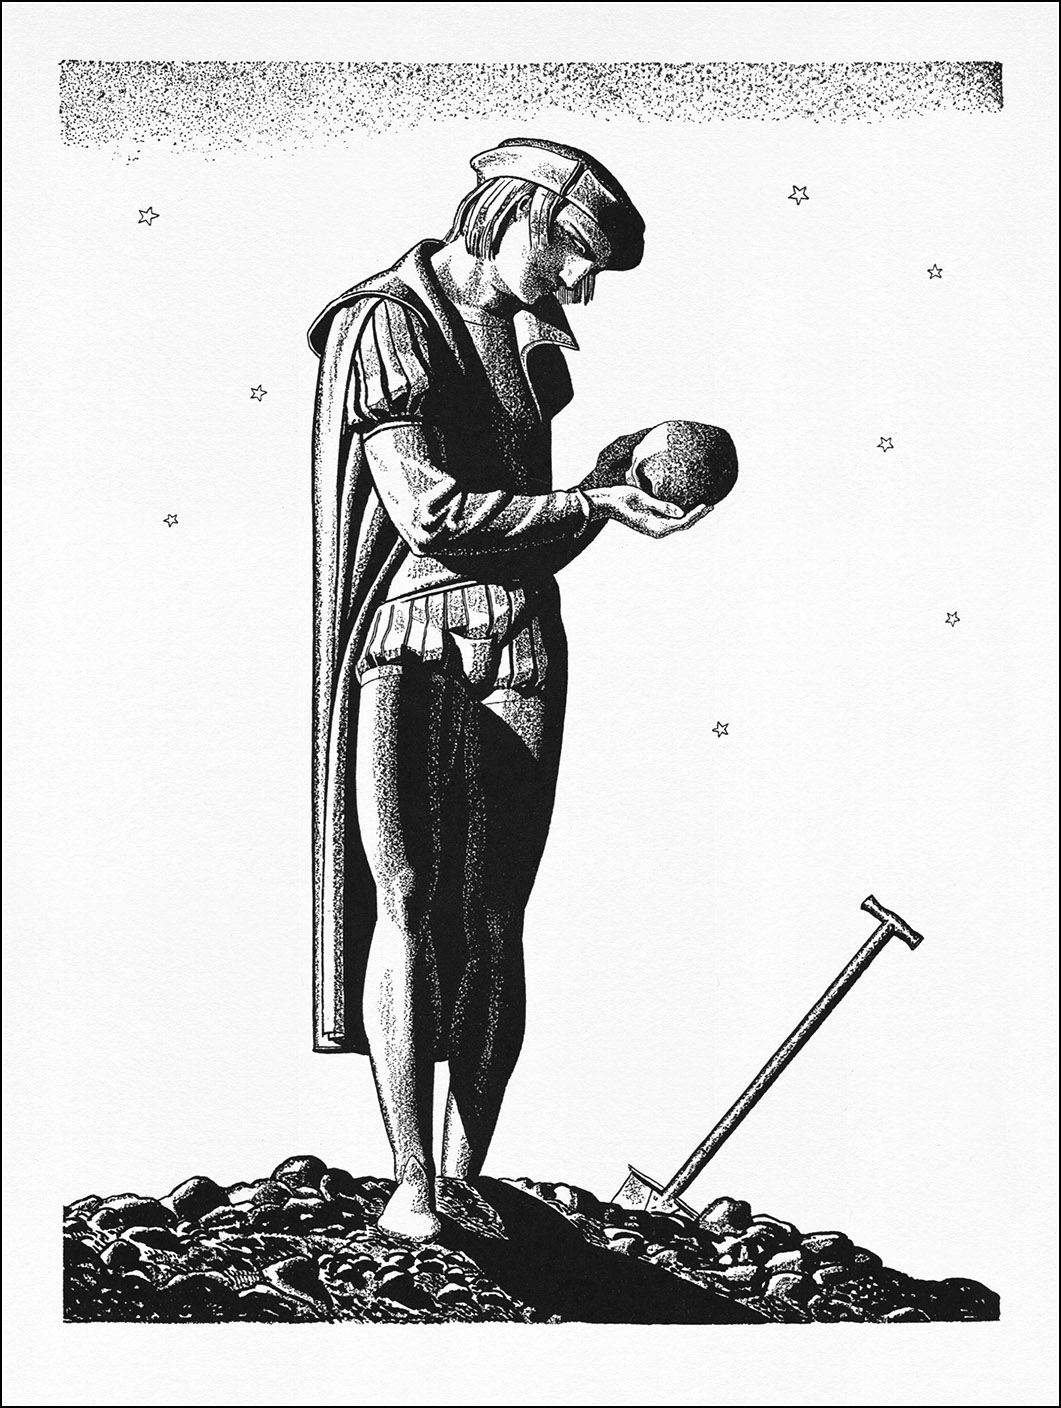 Rockwell Kent, The complete works of William Shakespeare